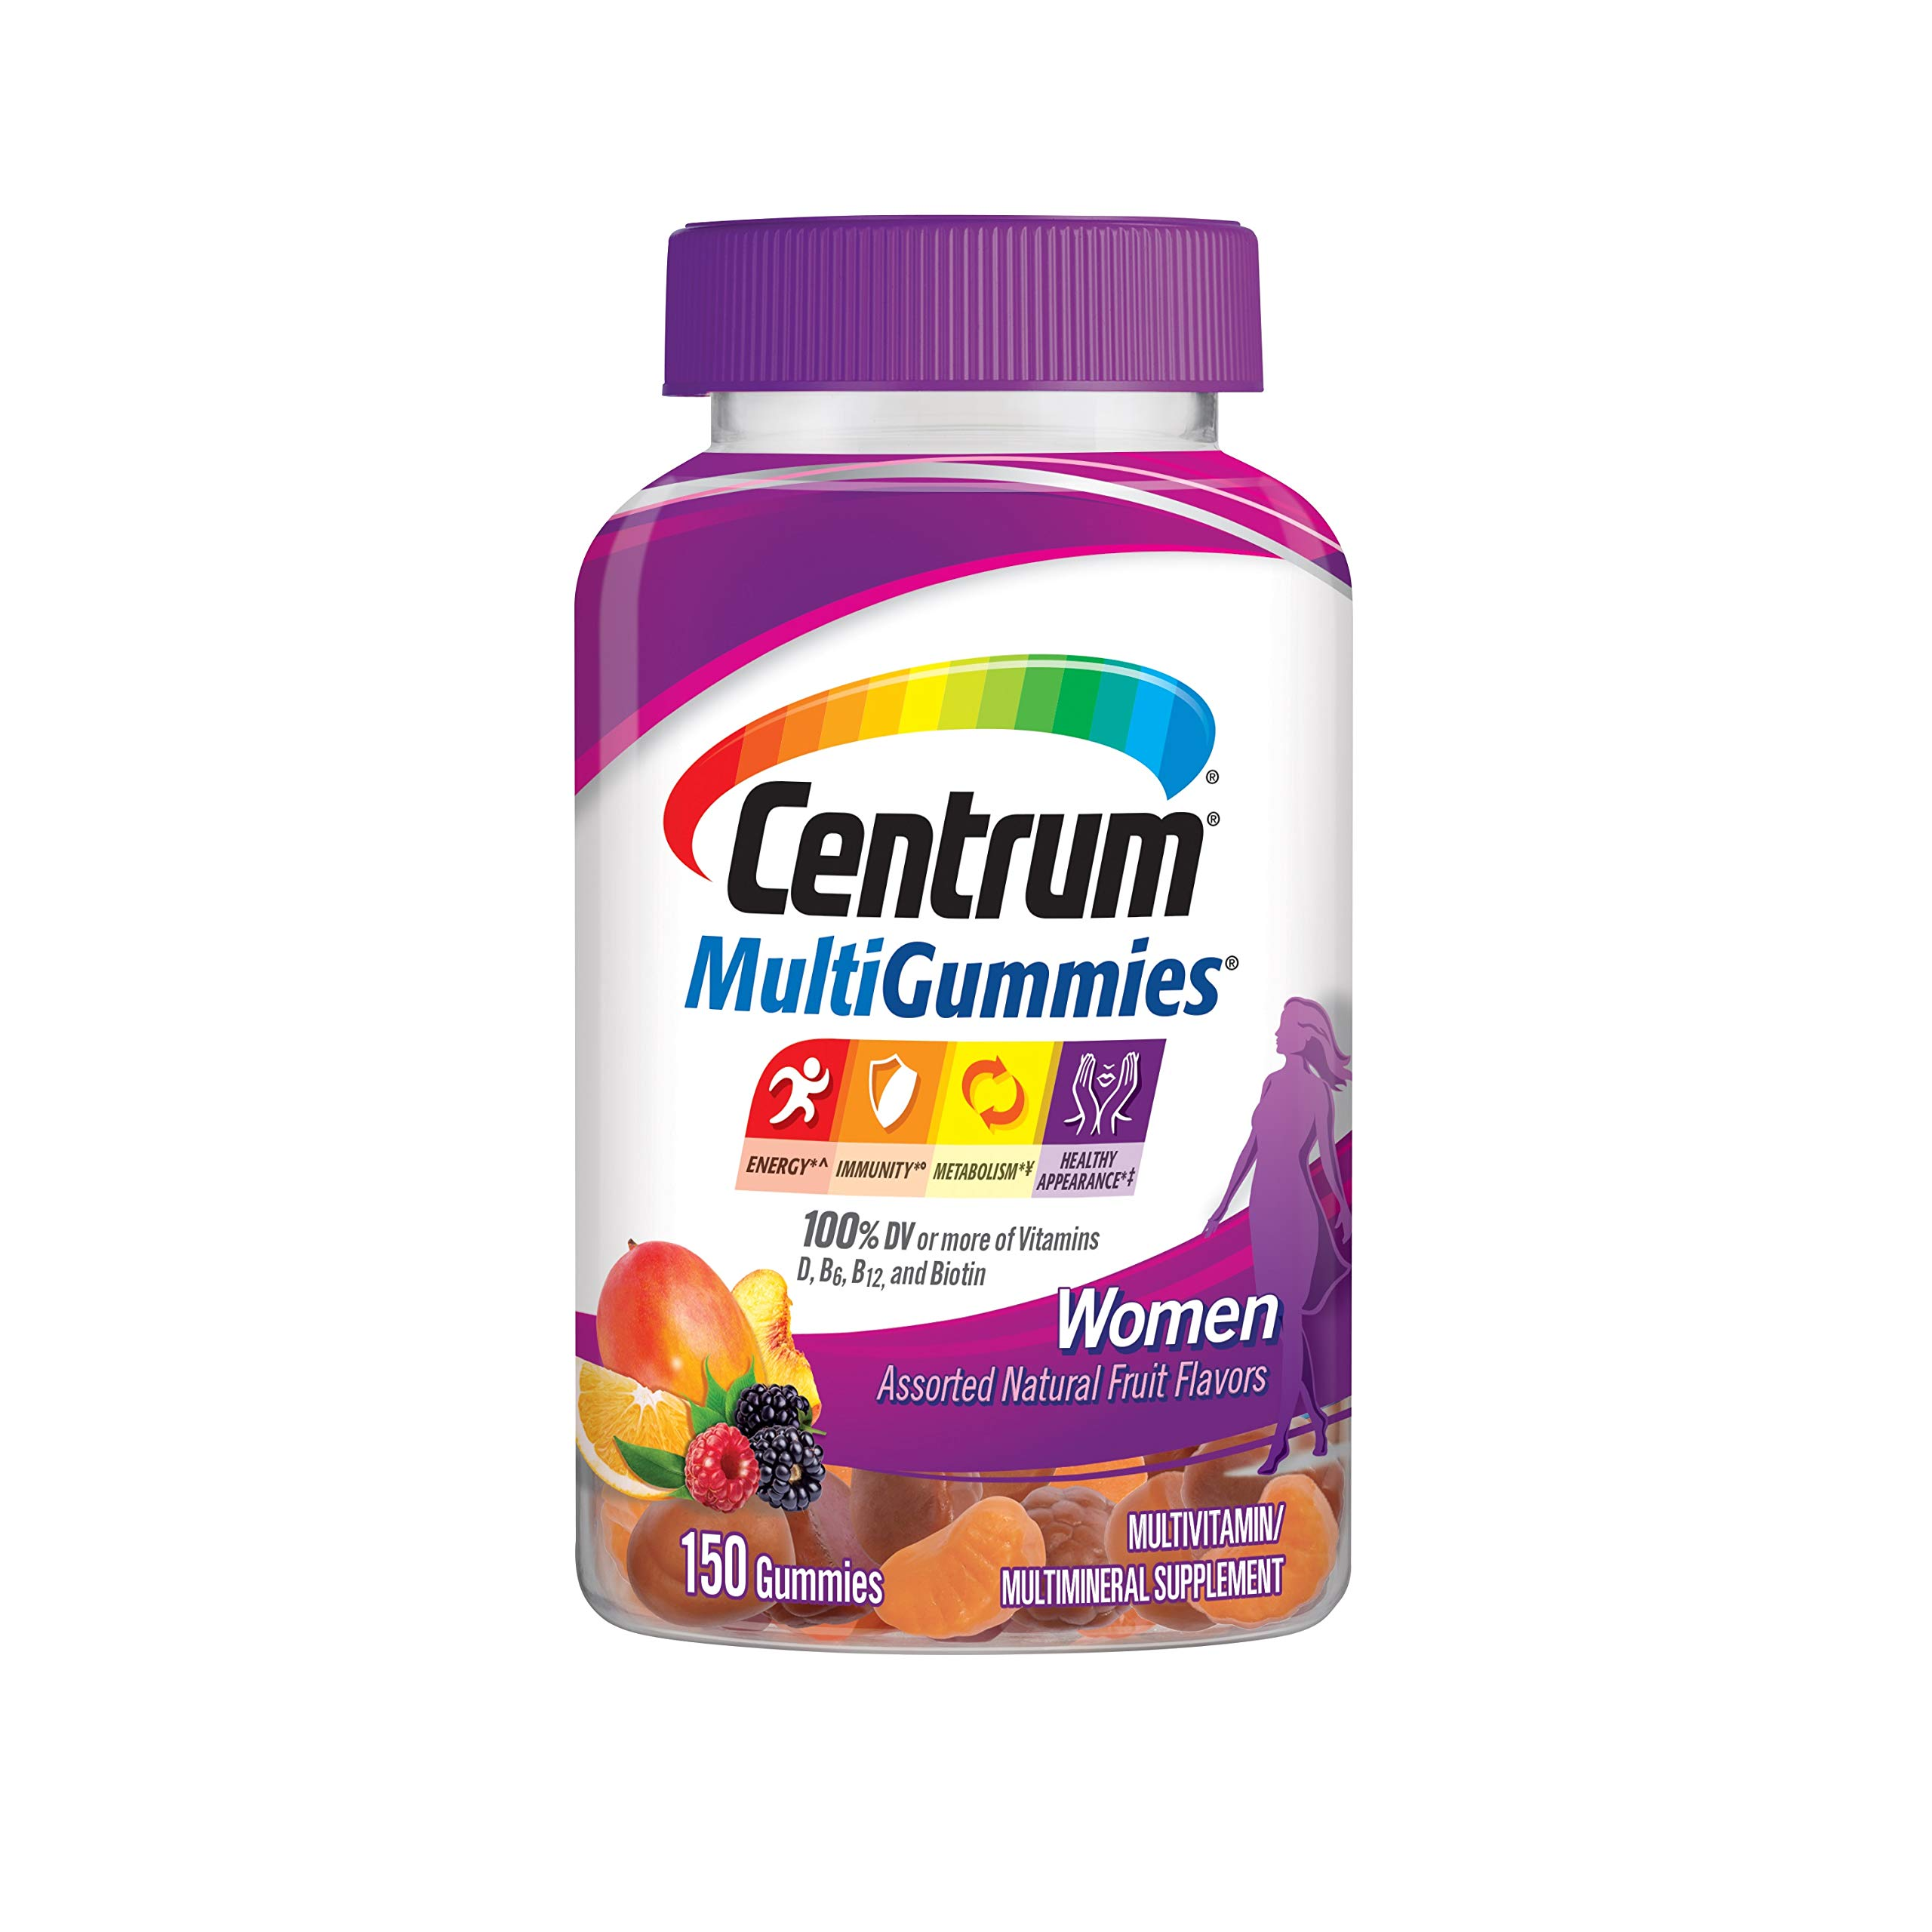 Centrum MultiGummies Gummy Multivitamin for Women, Multivitamin/Multimineral Supplement with Vitamin D3, B Vitamins and Antioxidants, Assorted Fruit Flavor - 150 Count